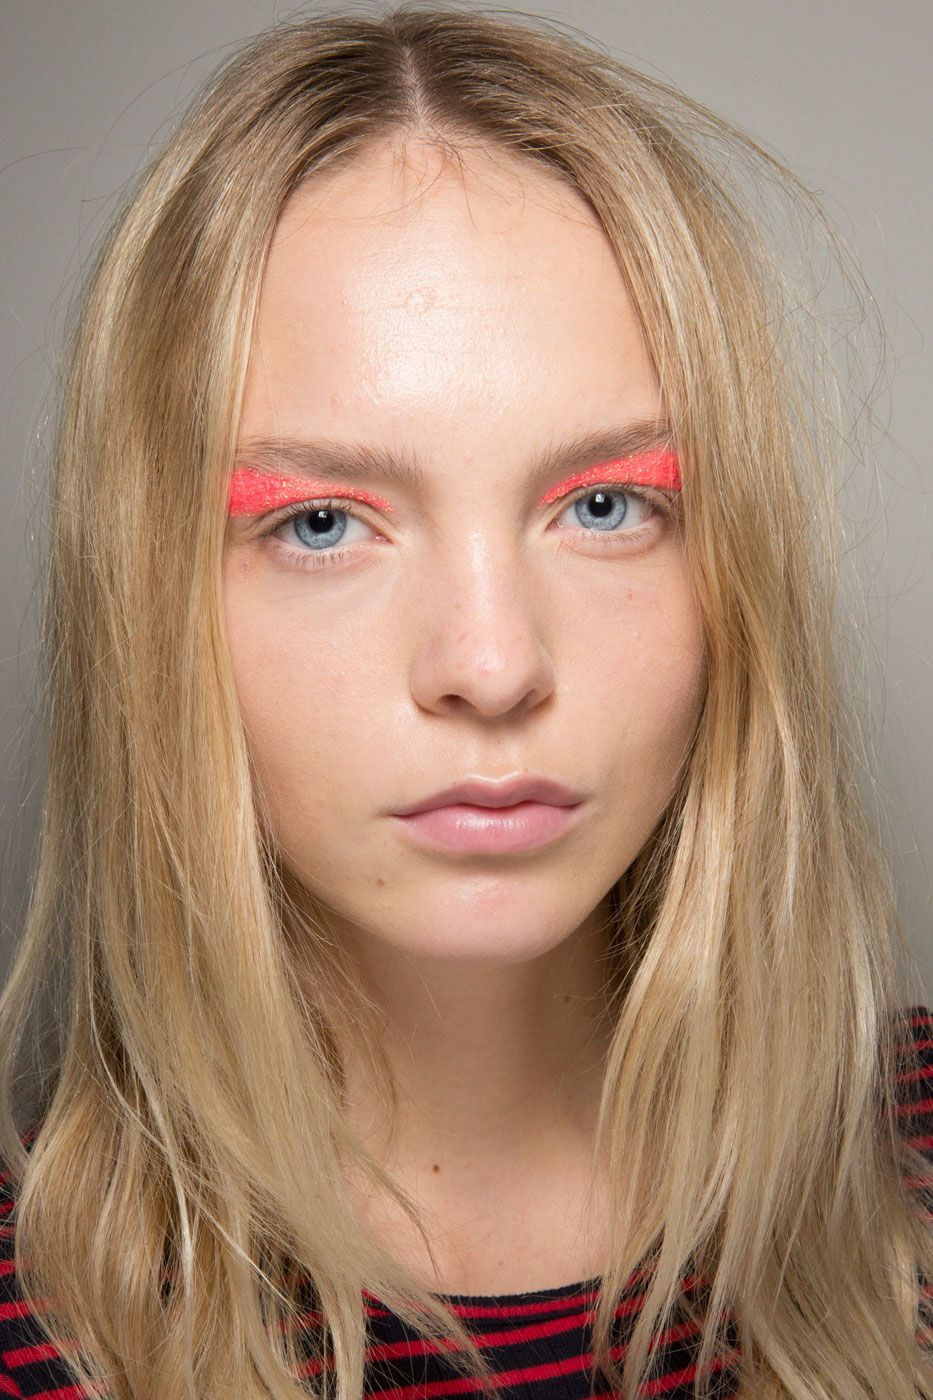 """<p>Eleven of the girls on the Valli runway were given  """"<a href=""""http://www.nytimes.com/2015/10/05/t-magazine/giambattista-valli-makeup-paris-fashion-week.html?_r=0"""" target=""""_blank"""">disco showers</a>,"""" according to makeup artist Val Garland, which meant a banana-shaped glitter application above the lids, just under the arches, in neon-bright shades. It's kind of like a subversive cat eye.</p>"""